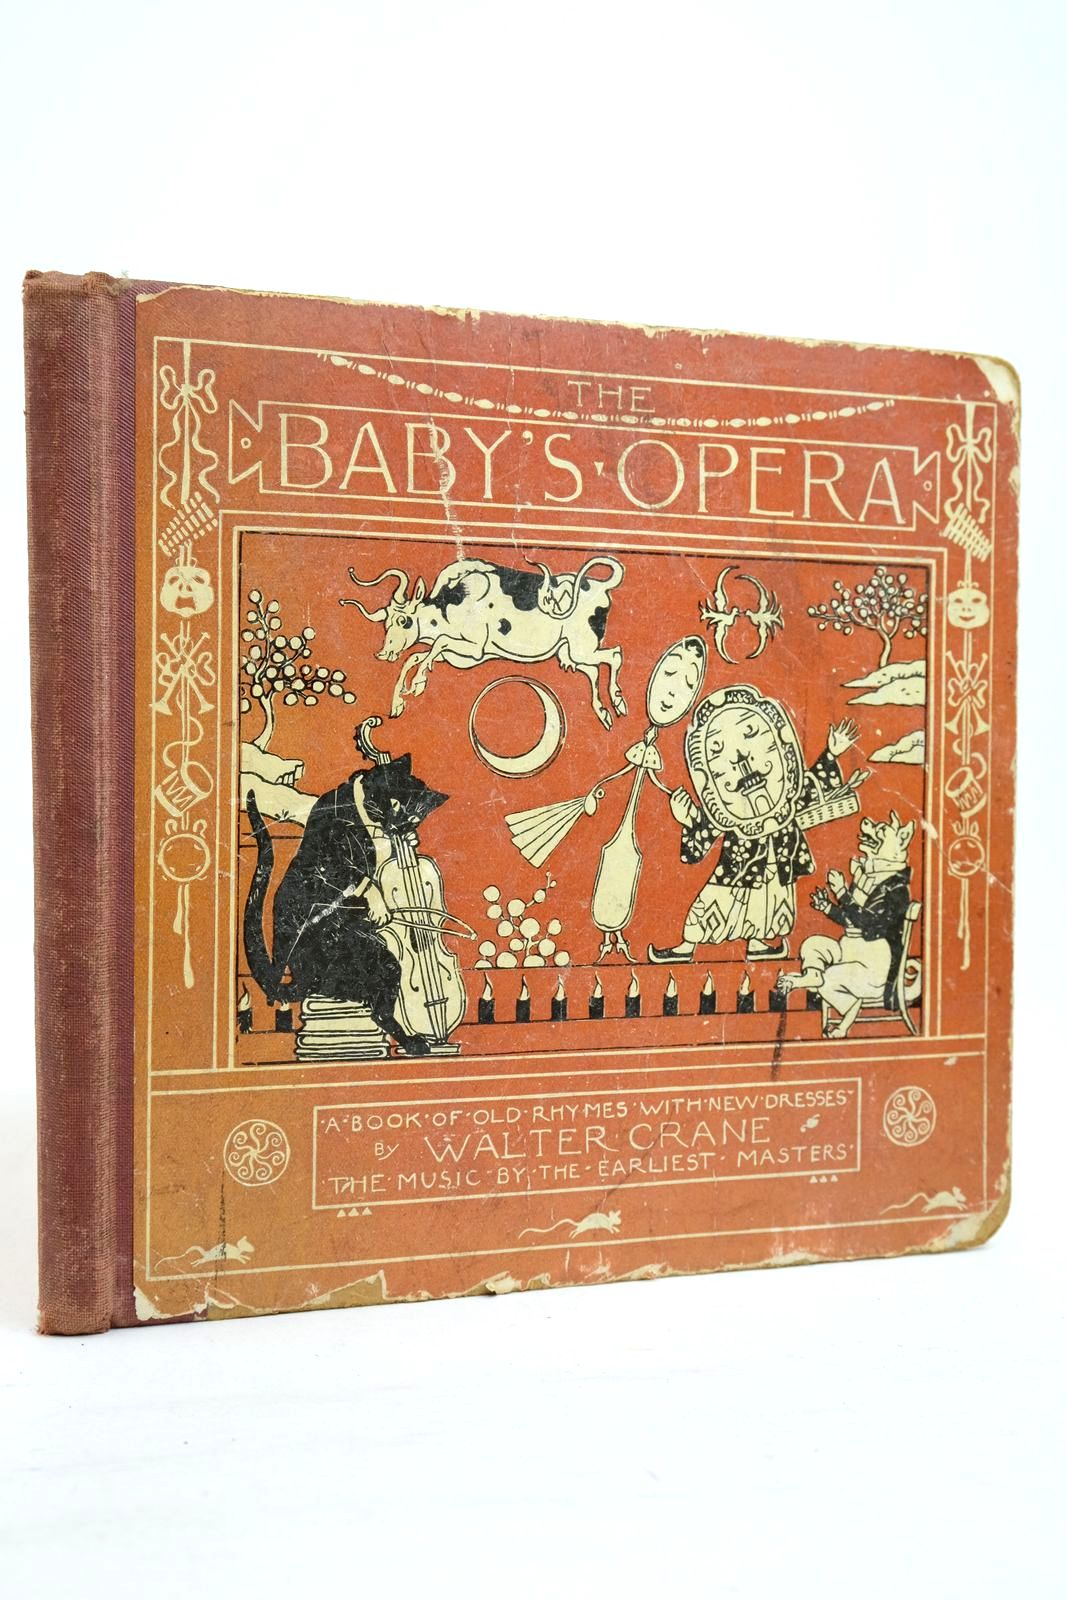 Photo of THE BABY'S OPERA written by Crane, Walter illustrated by Crane, Walter published by Frederick Warne & Co Ltd. (STOCK CODE: 2134729)  for sale by Stella & Rose's Books